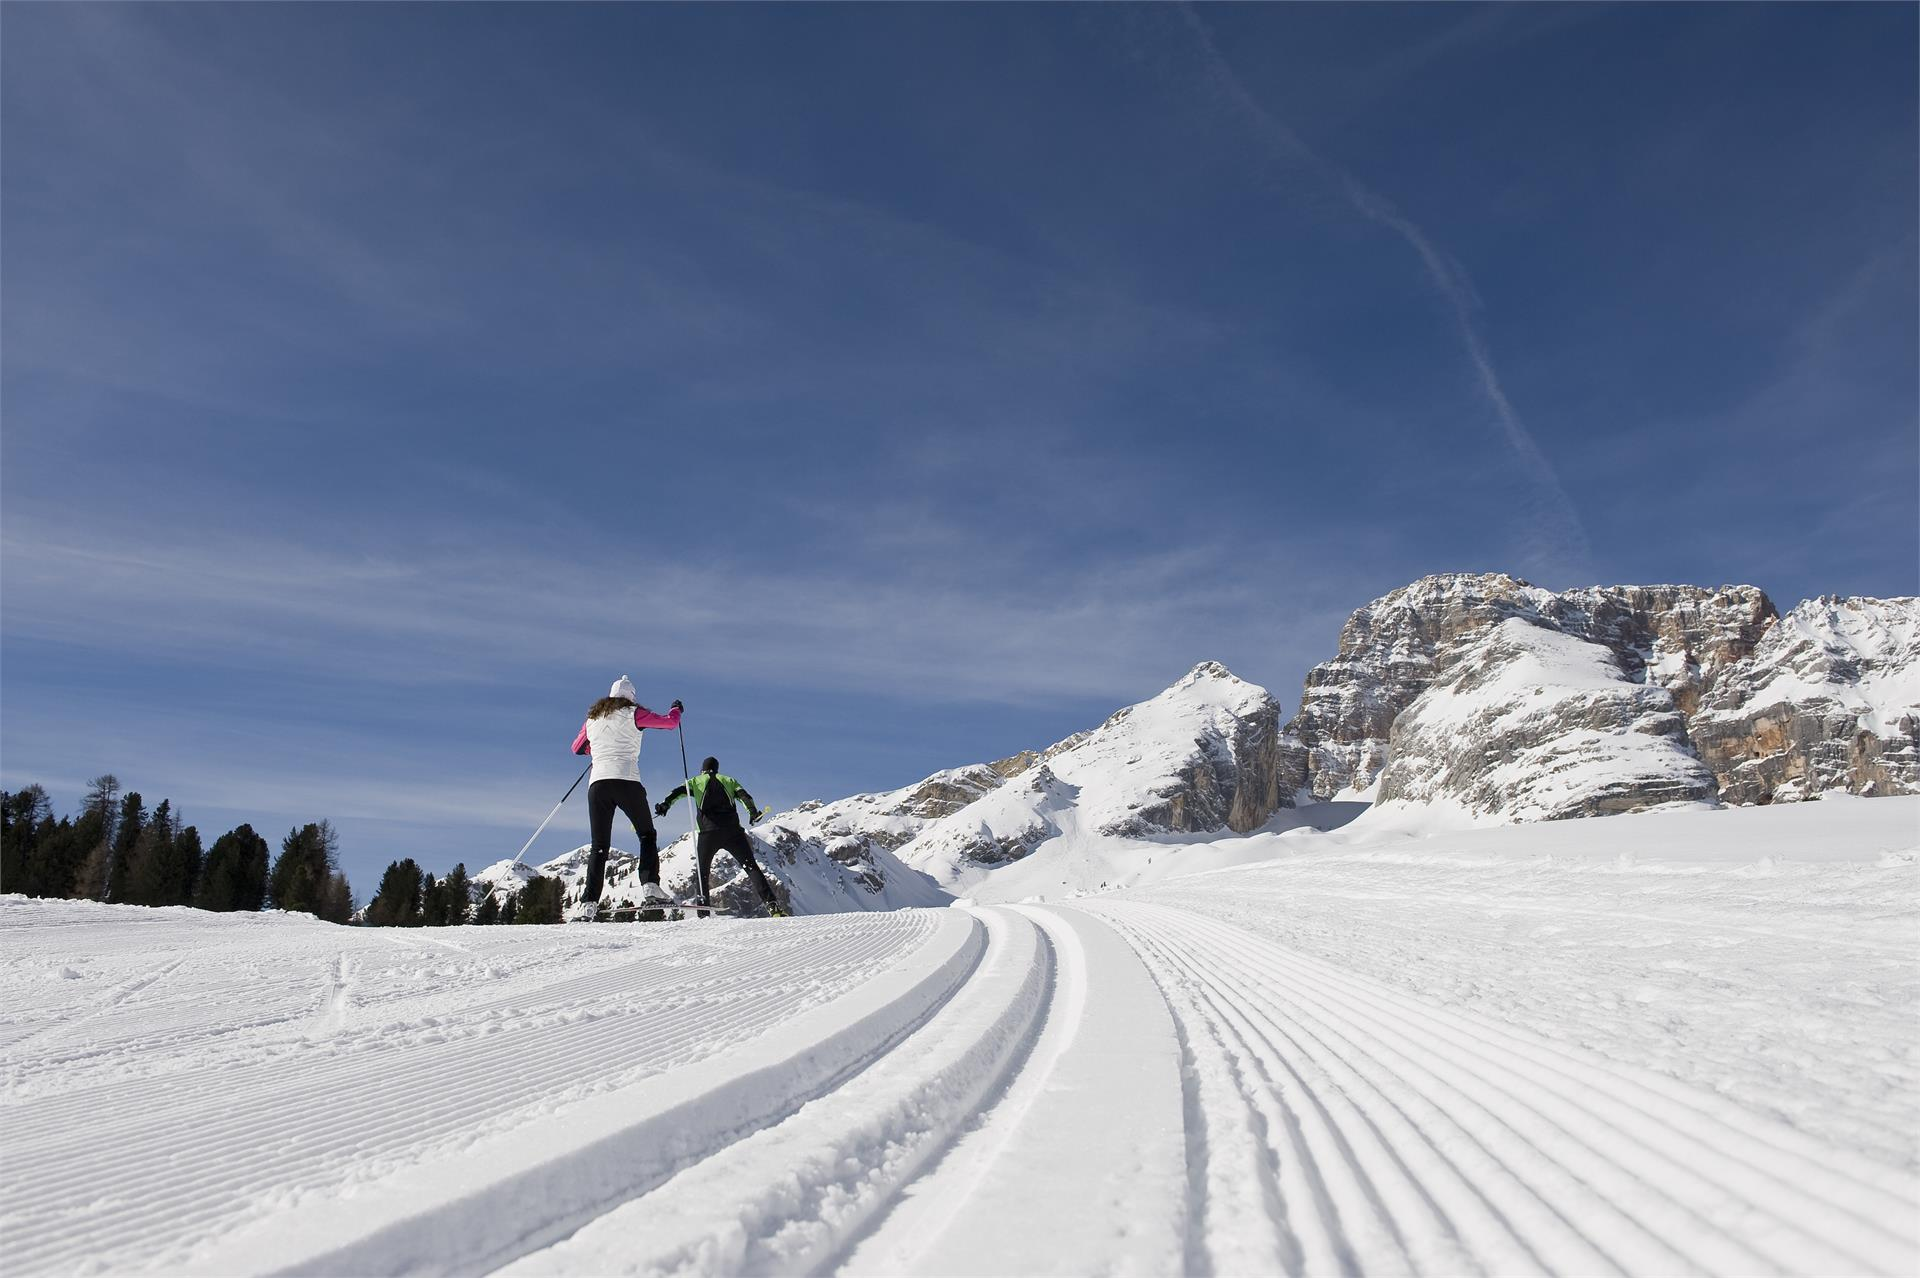 Cross-country-skiing at Prato Piazza